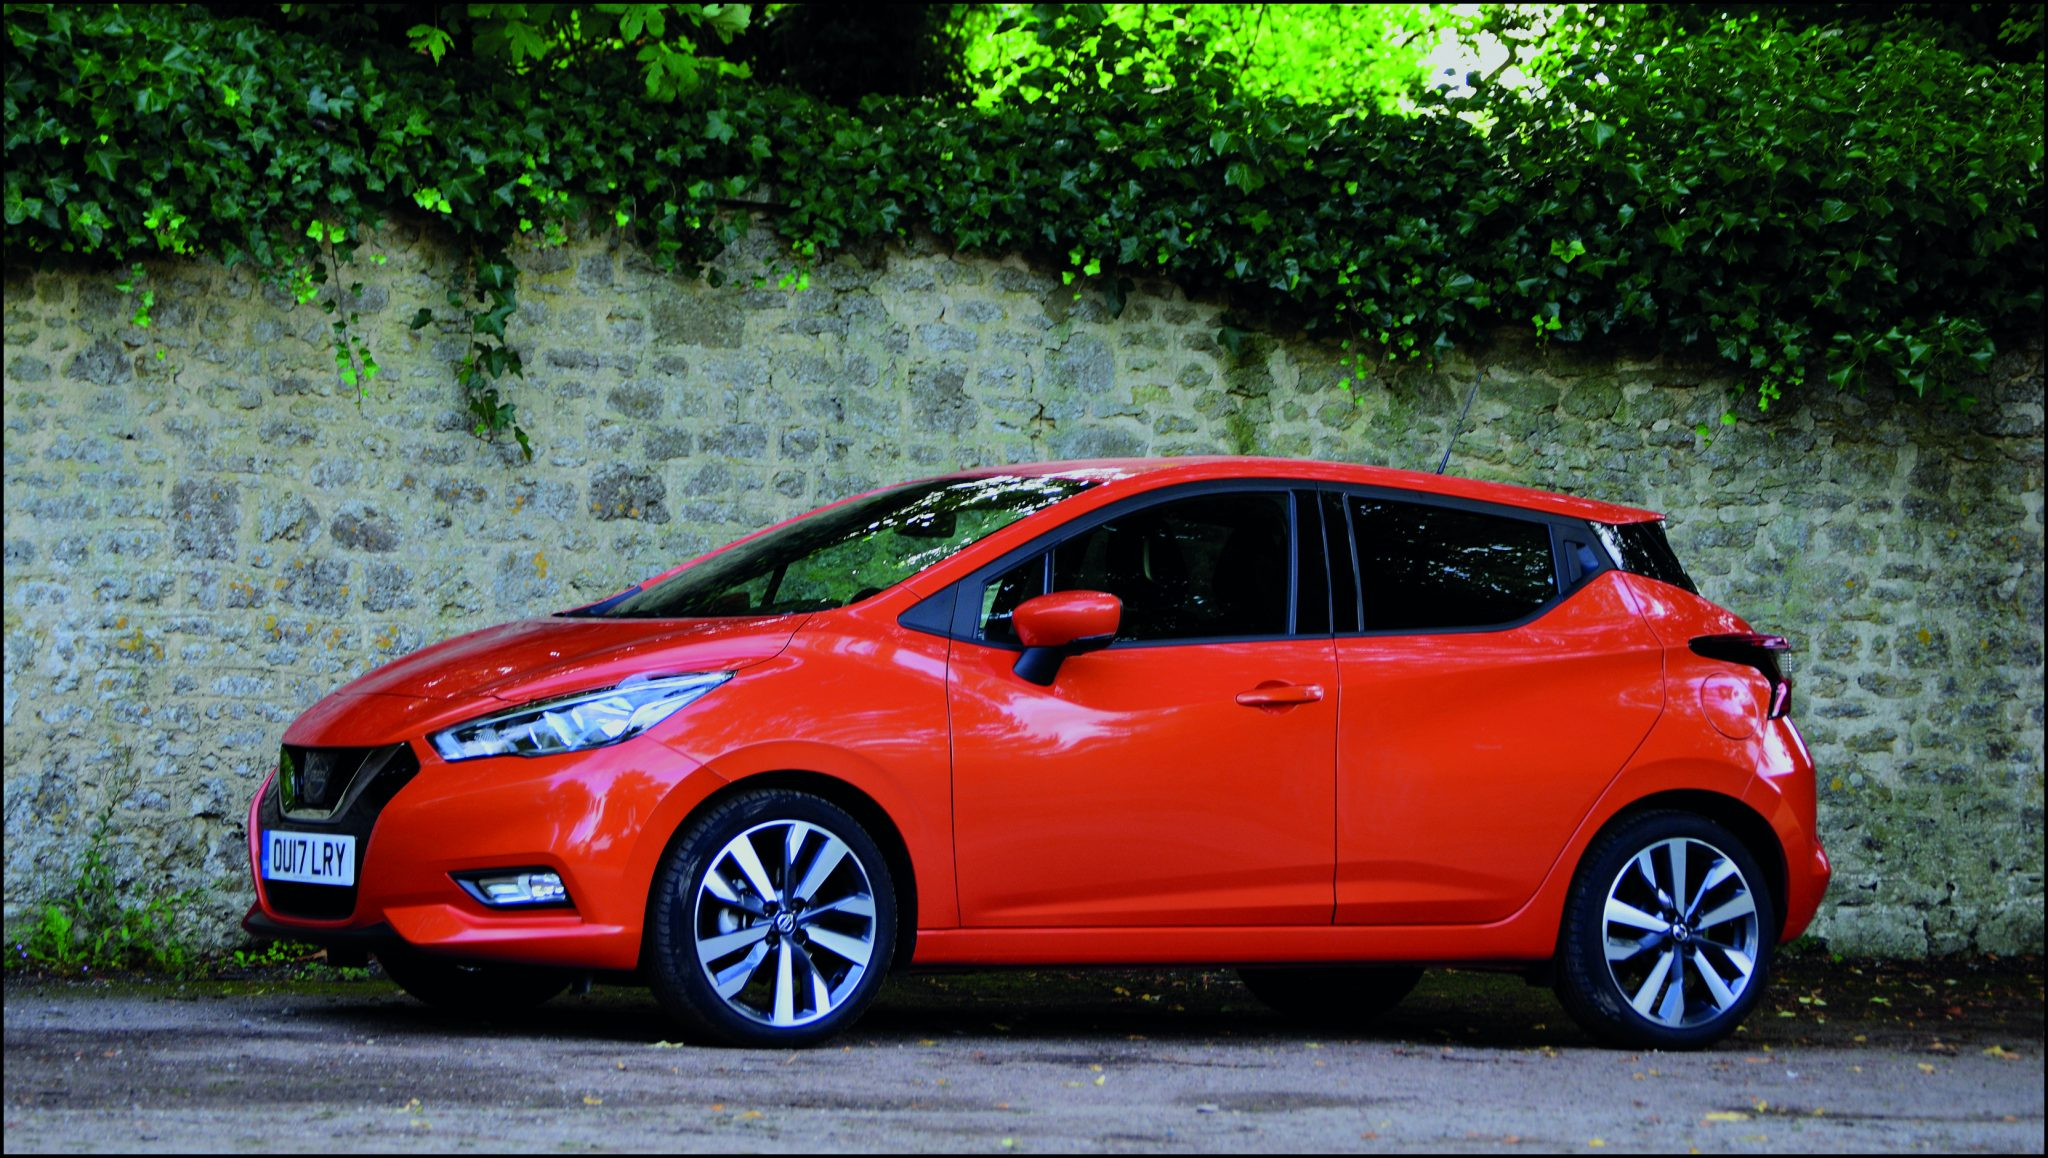 Car review: eye catching Nissan Micra shakes off dull image with design revamp